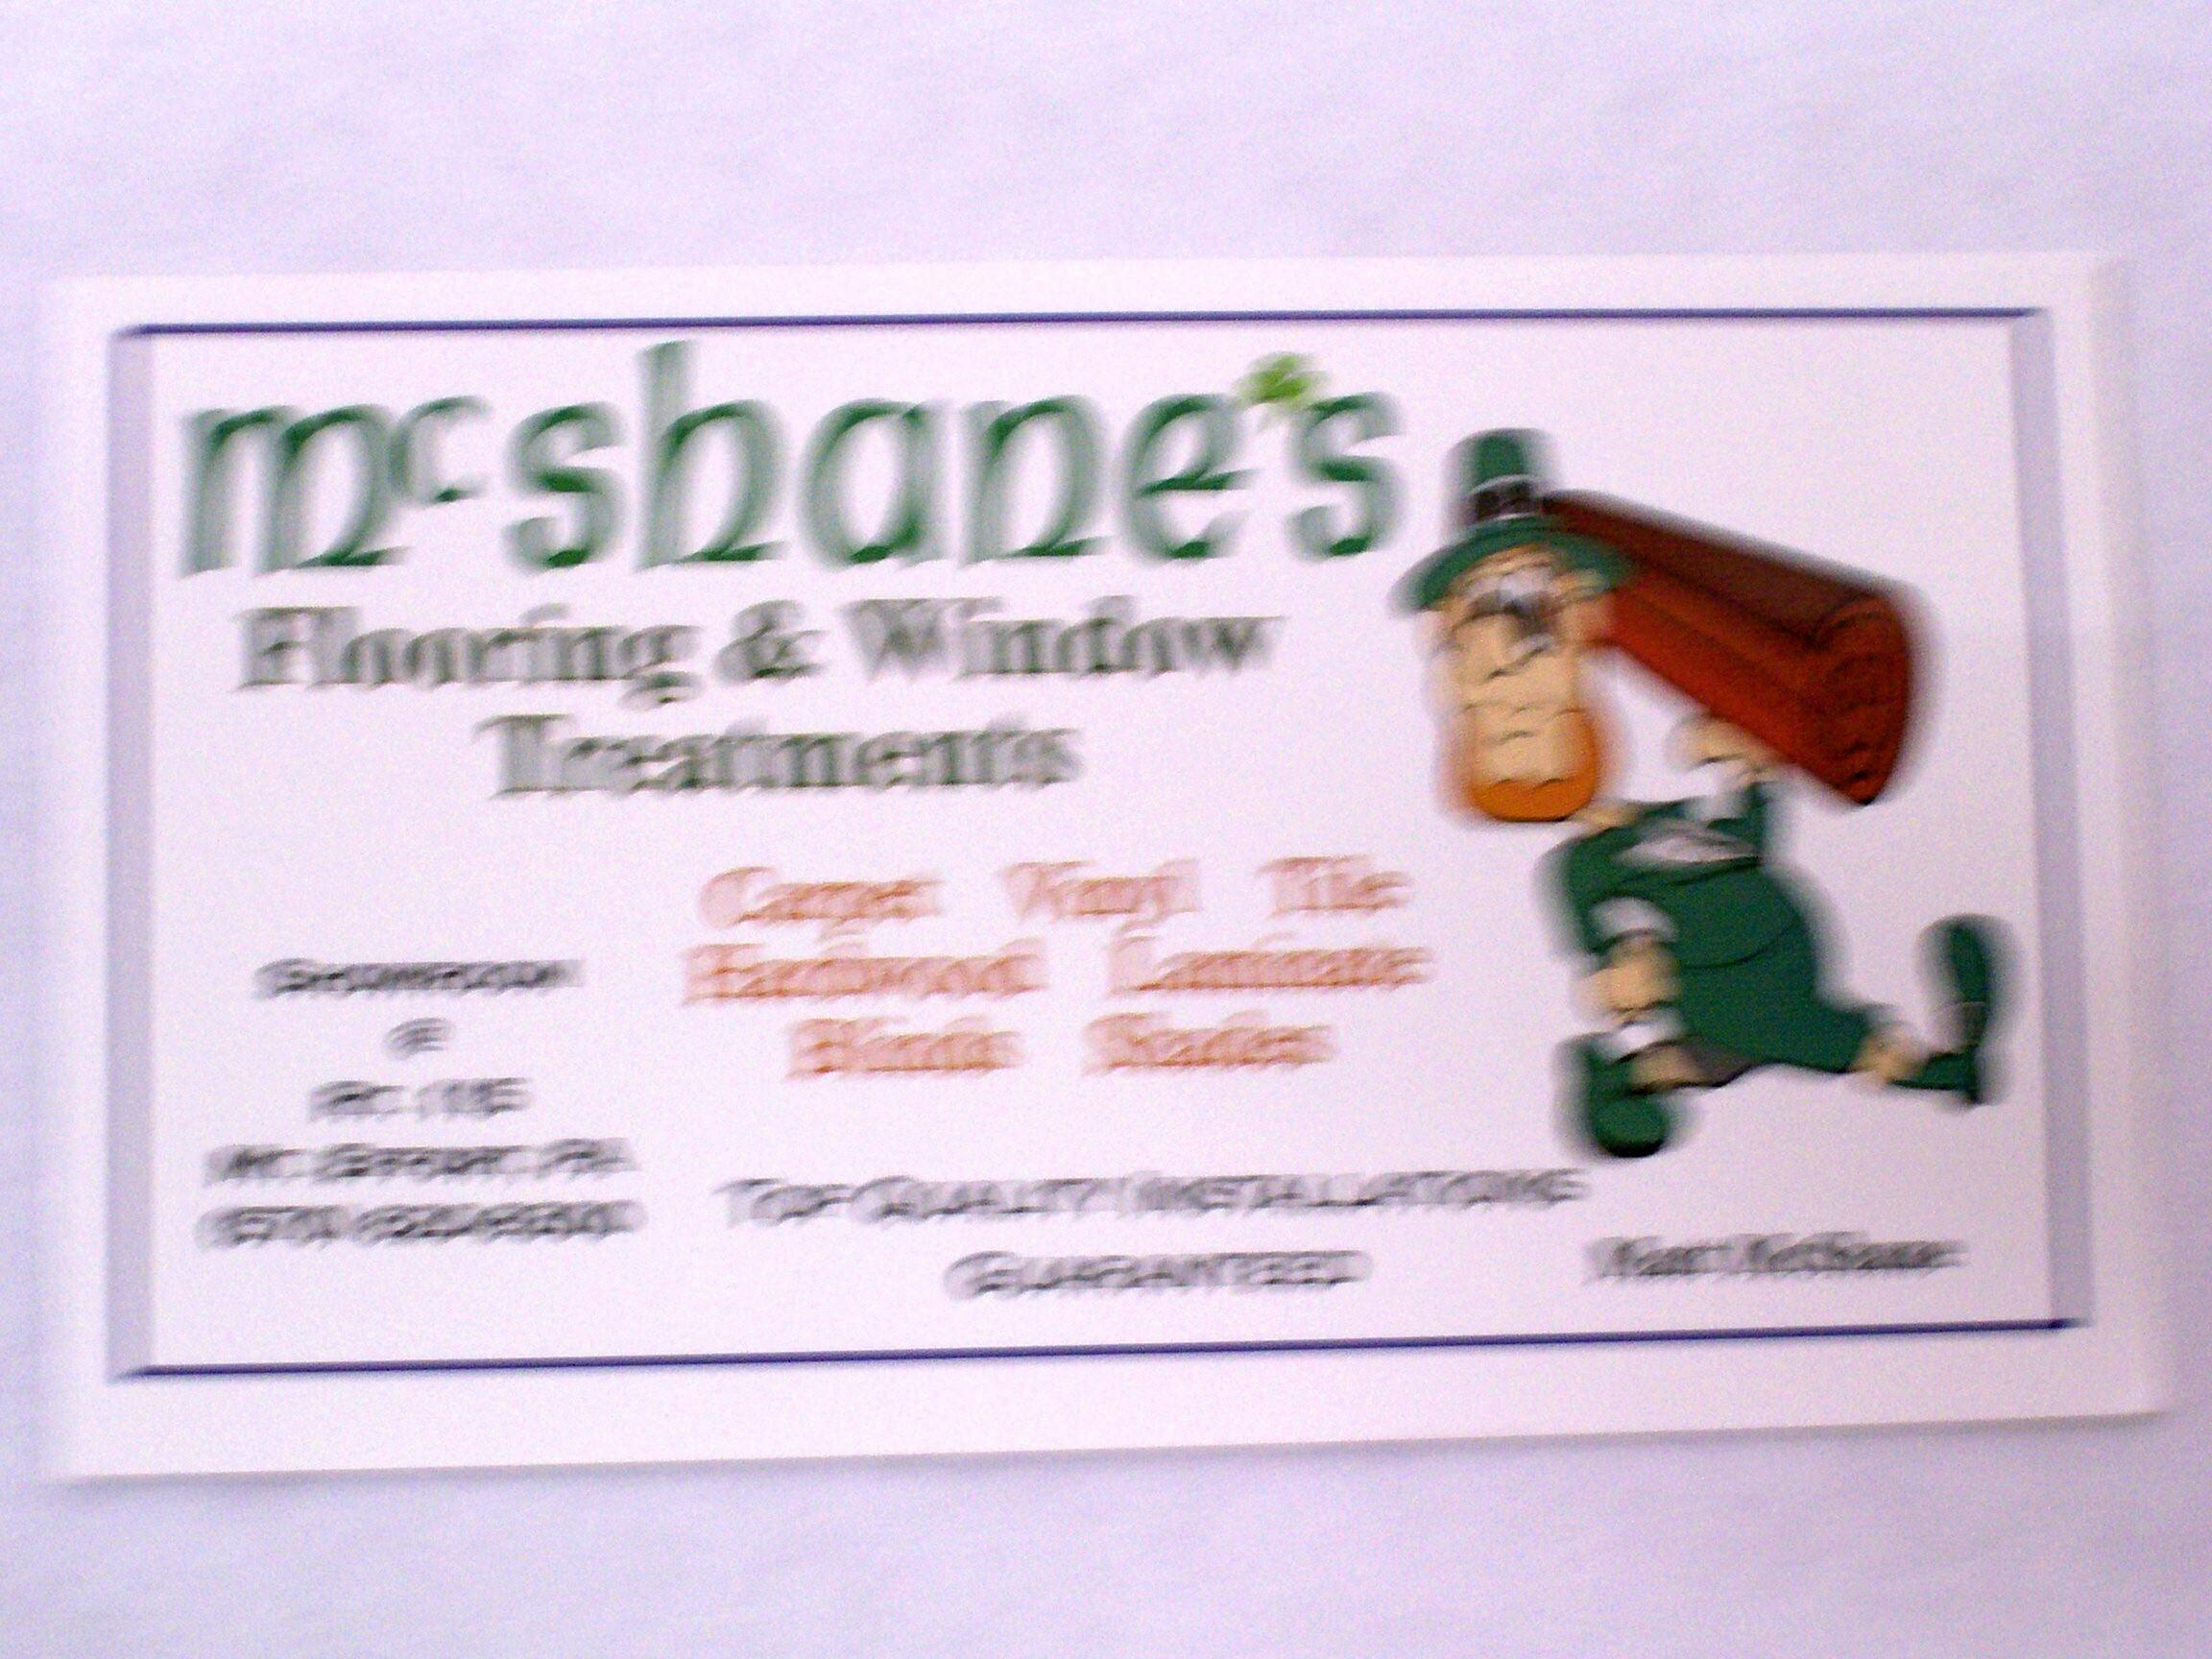 Mcshanes Flooring